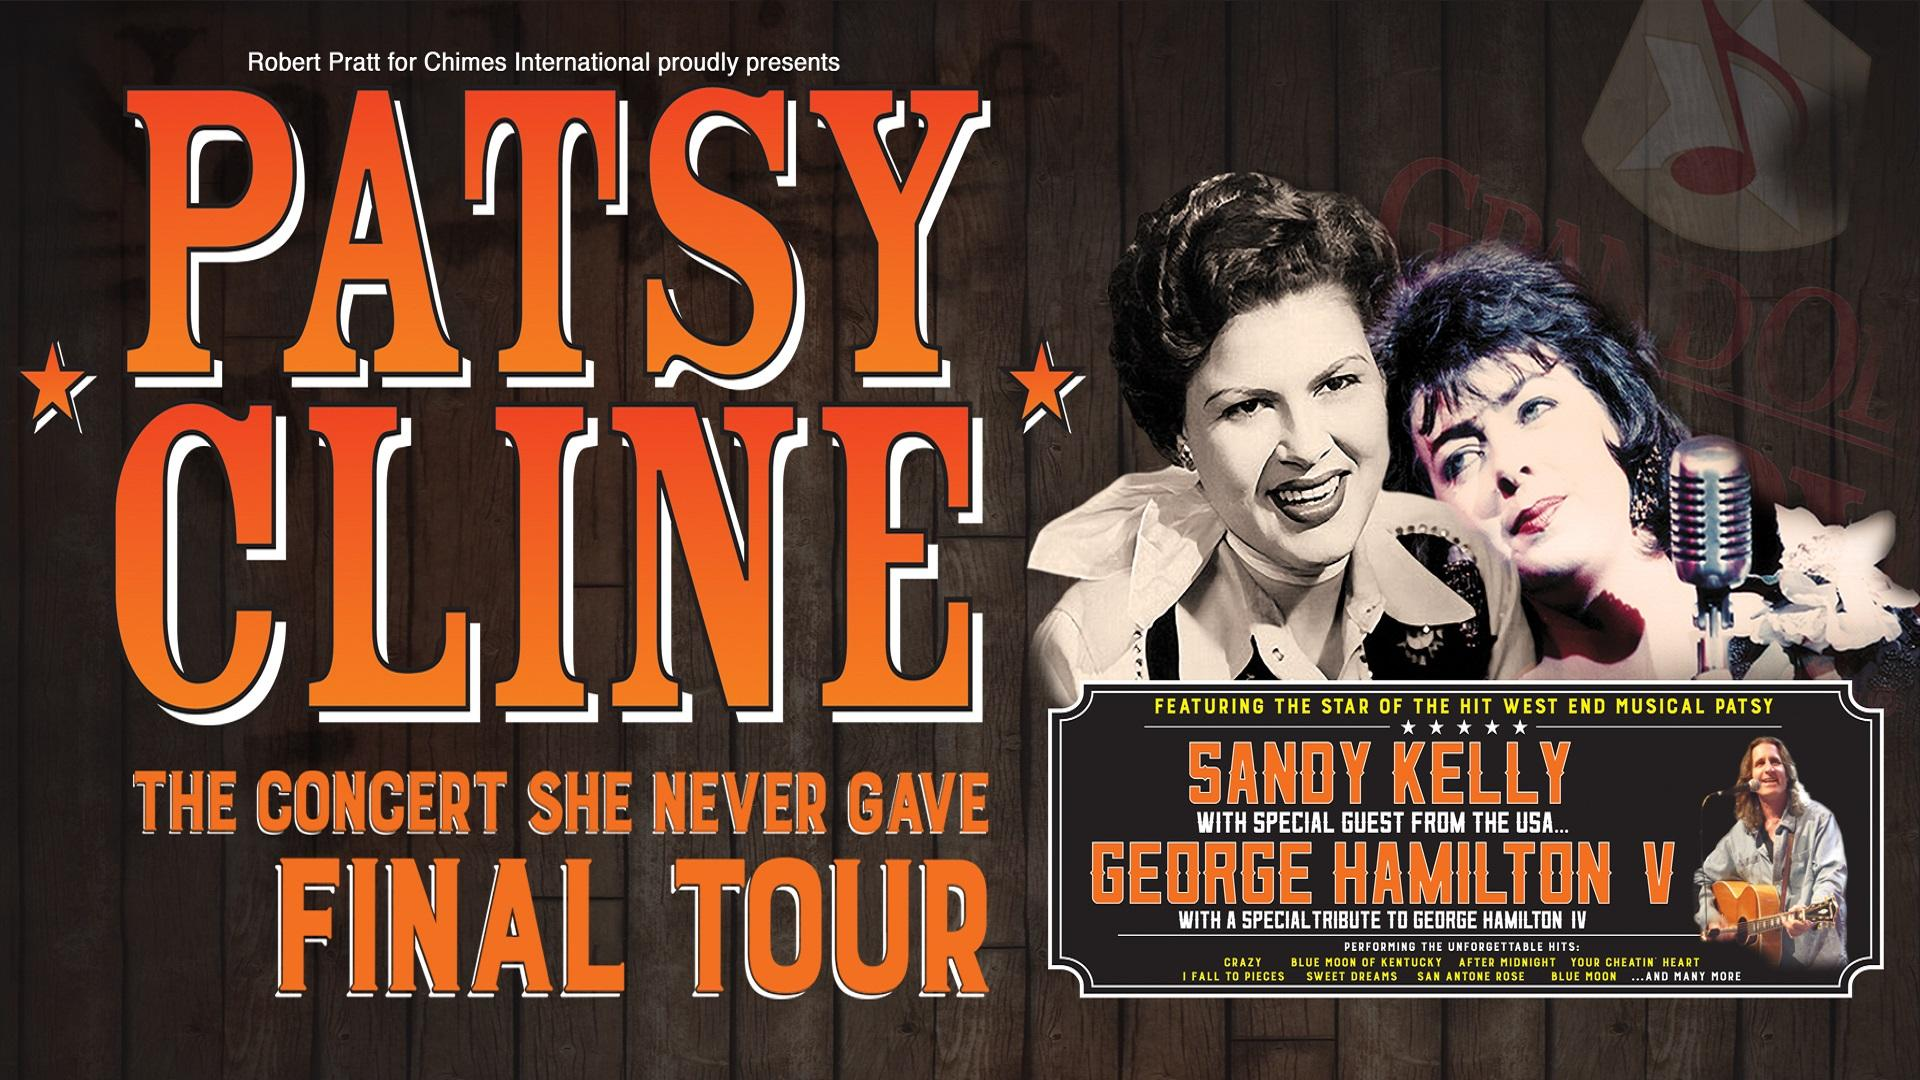 Patsy Cline: The Concert She Never Gave